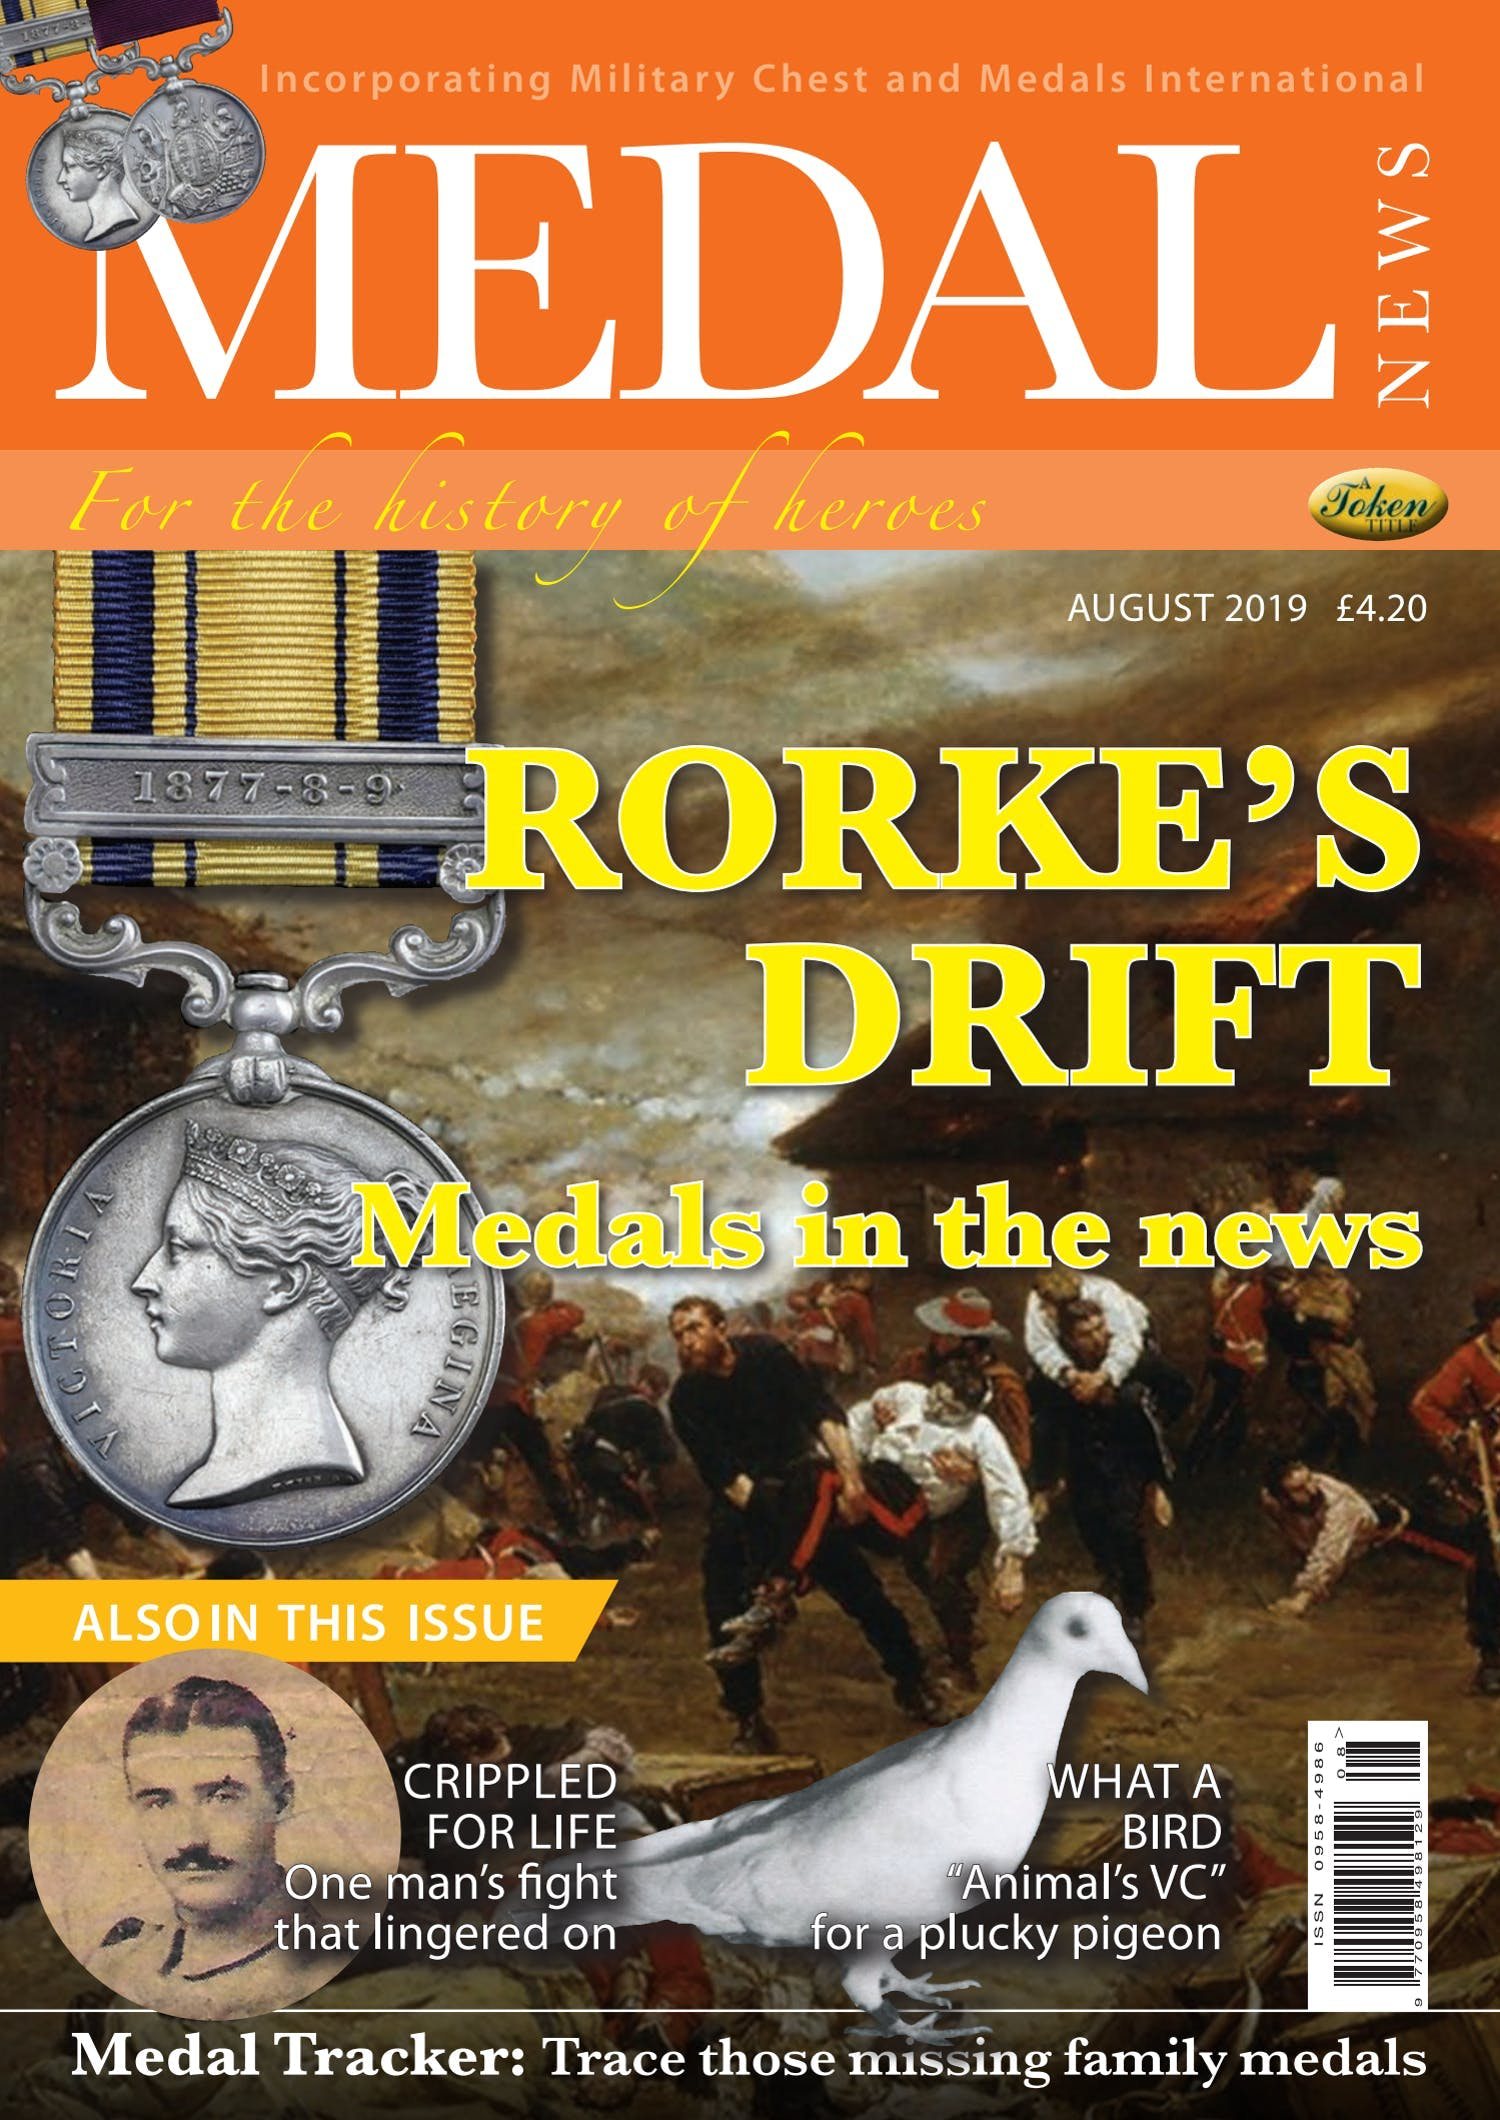 Front cover of 'Rorke's Drift medals on sale', Medal News August 2019, Volume 57, Number 7 by Token Publishing